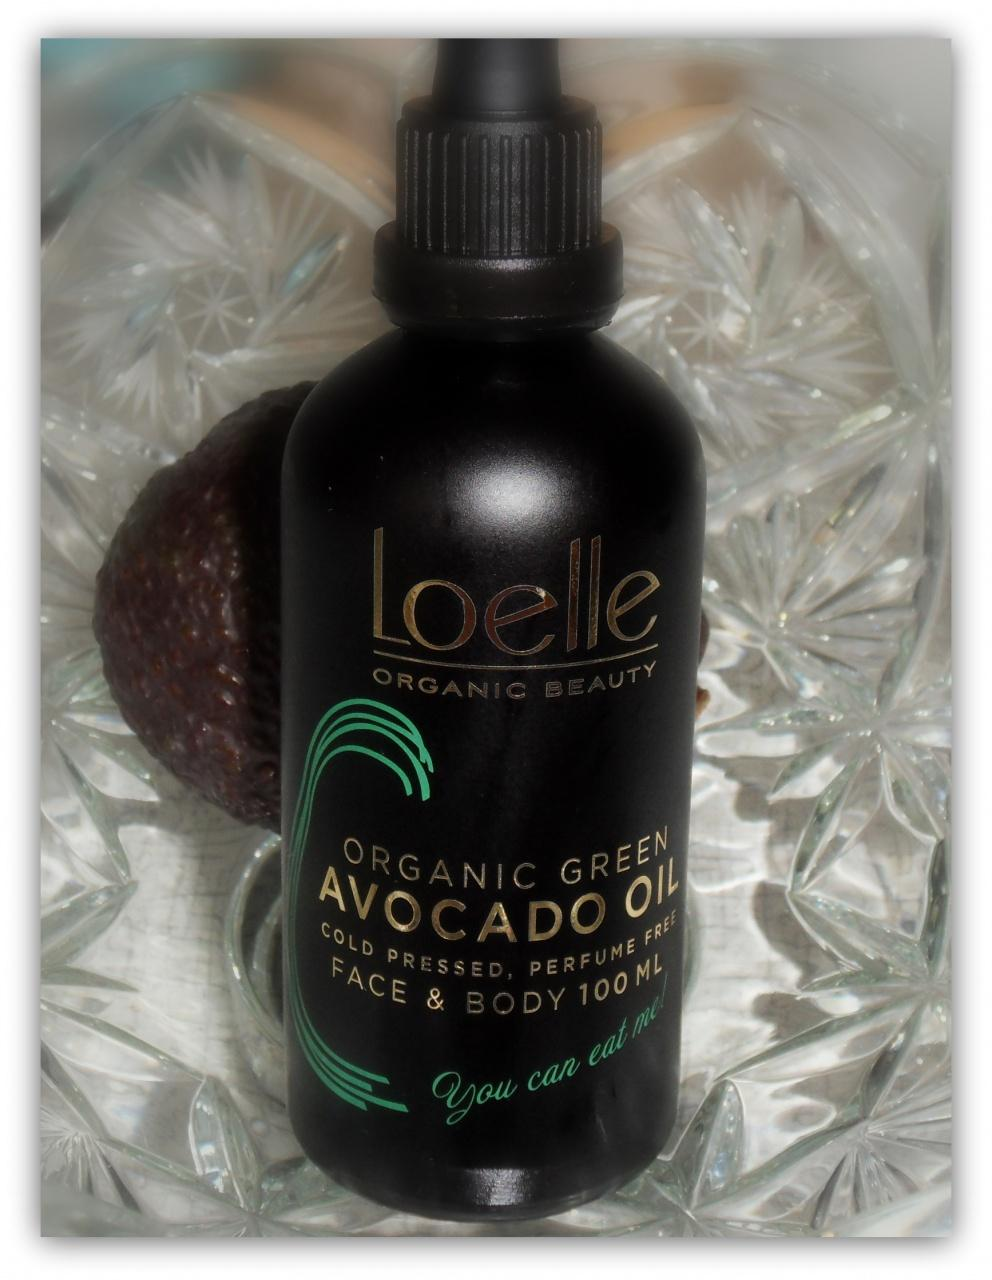 Loelle Avocado Oil